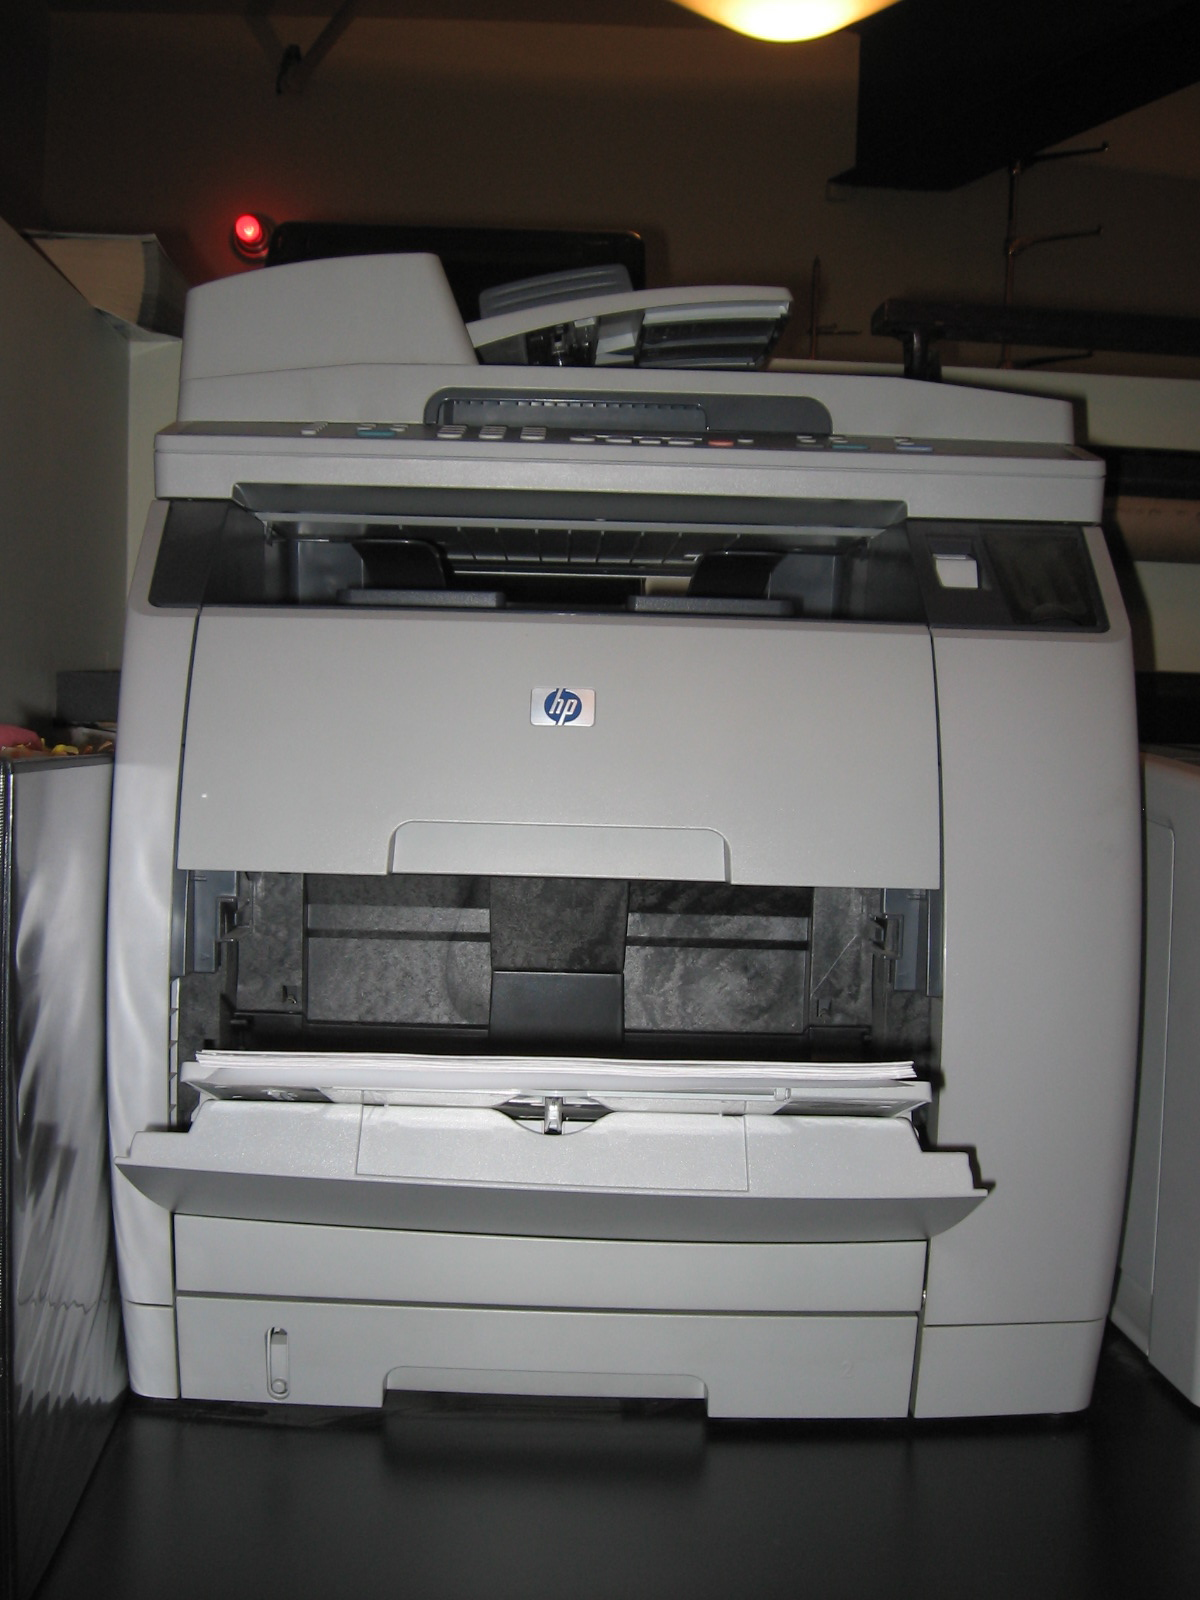 color laserjet 2840 glowing - Hp Color Laserjet 2840